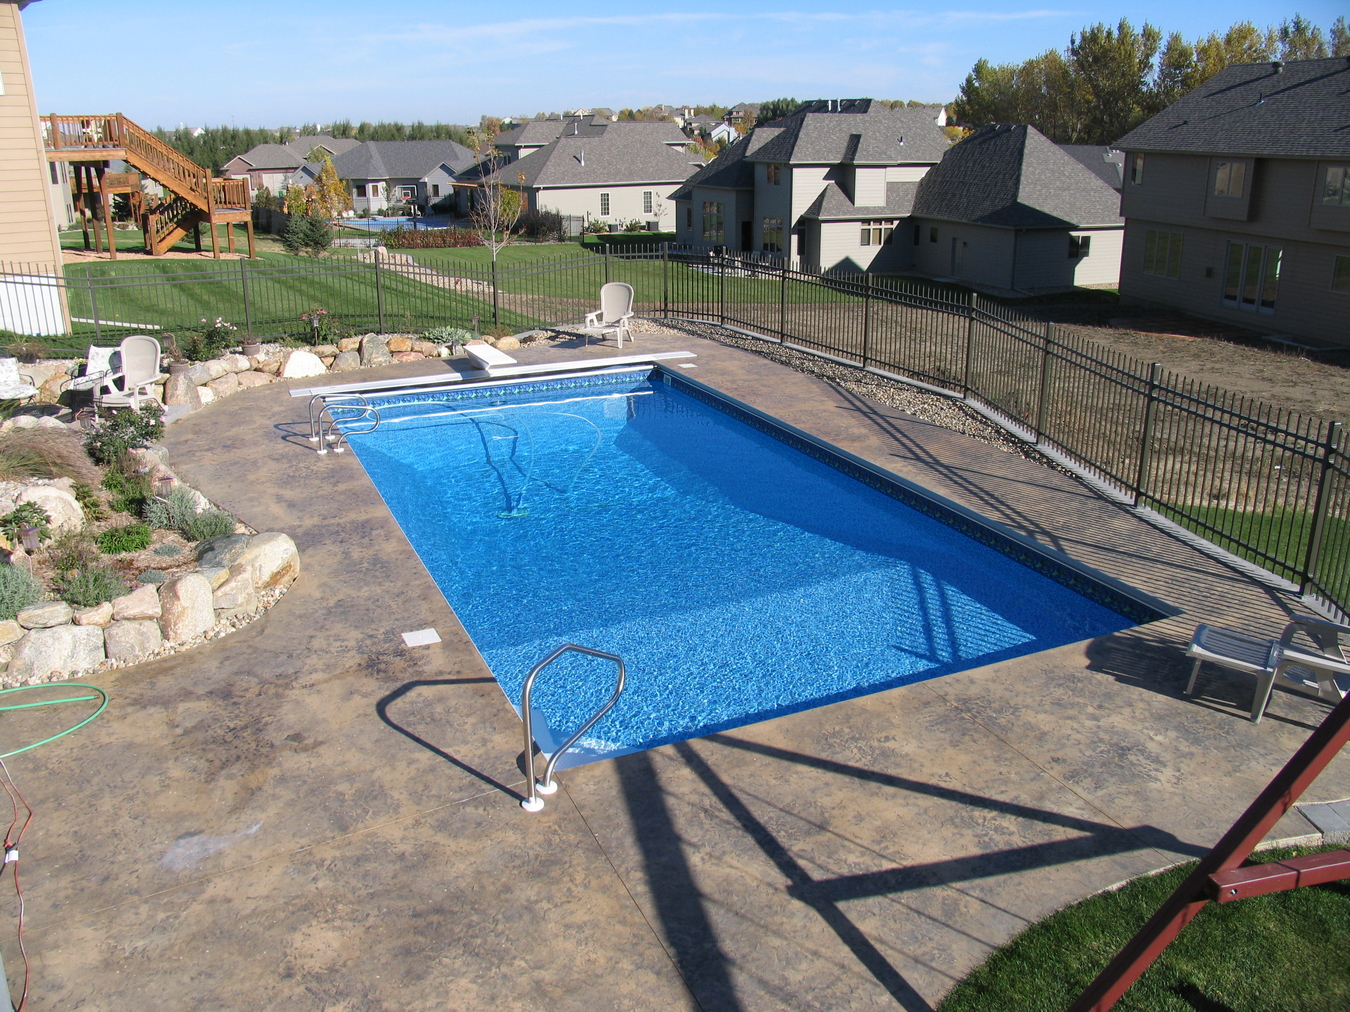 Inground pools combined pool spa